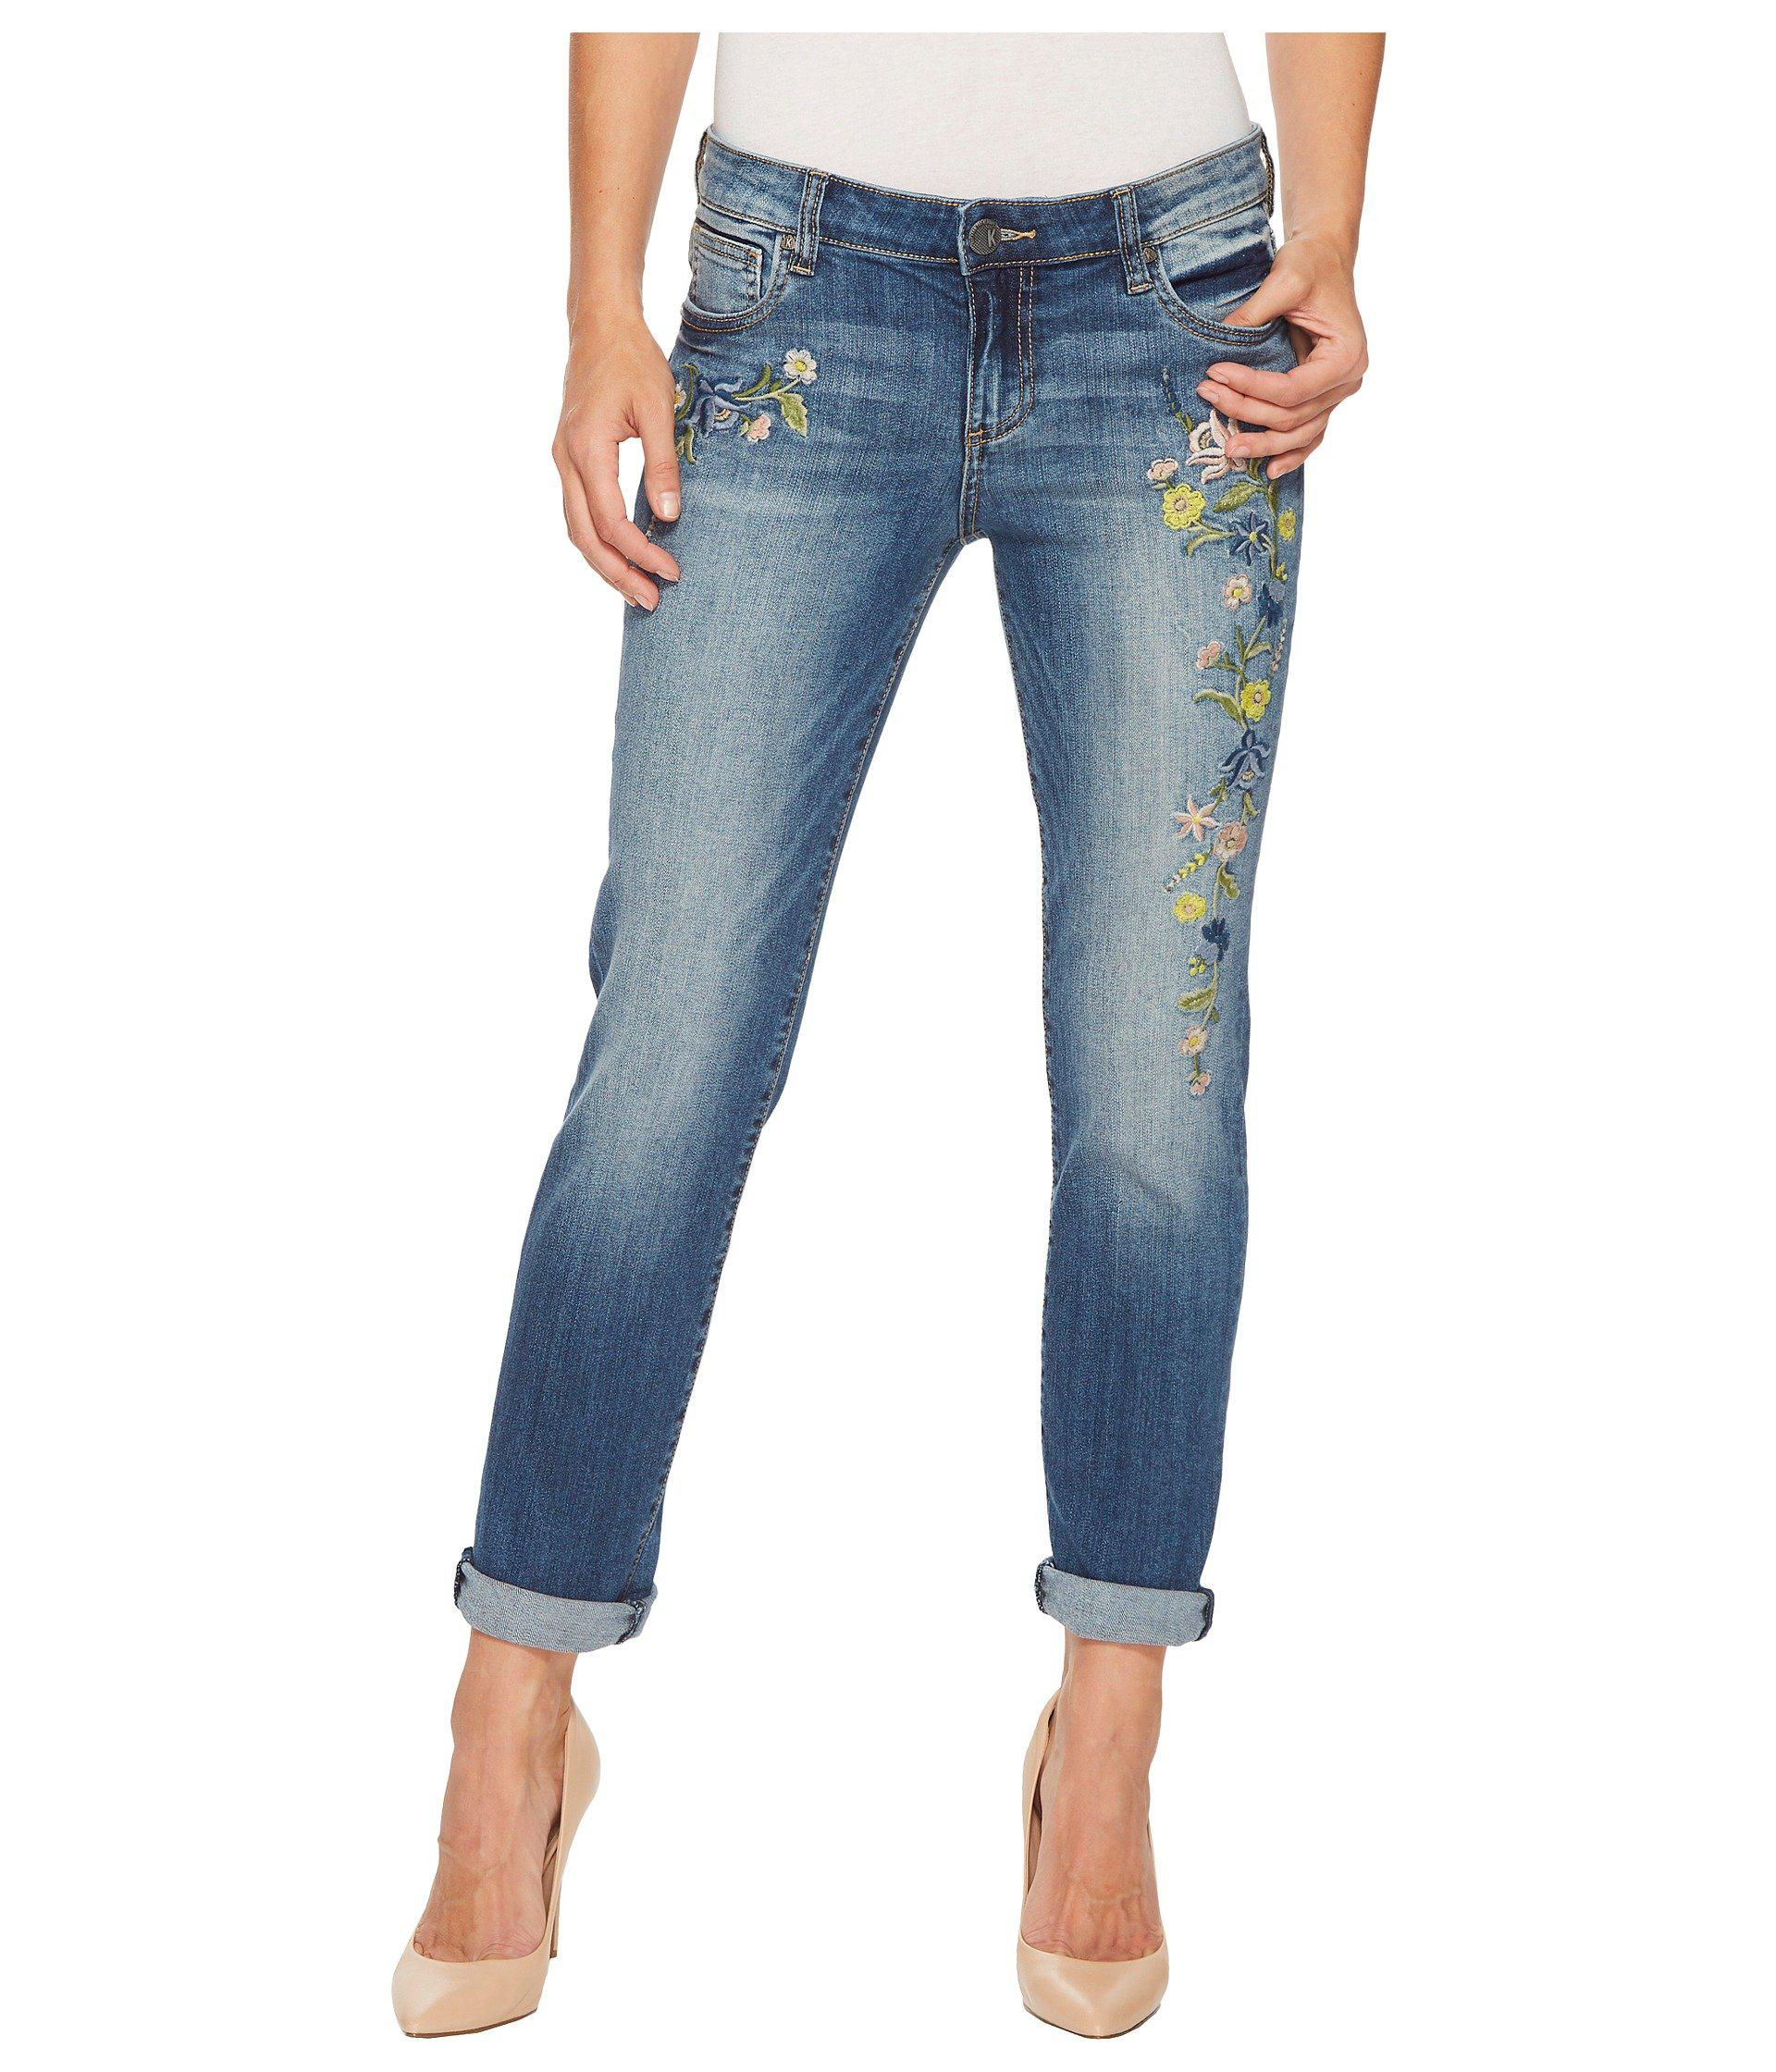 Kut from the kloth catherine boyfriend jeans plus size 16W blue embroidered